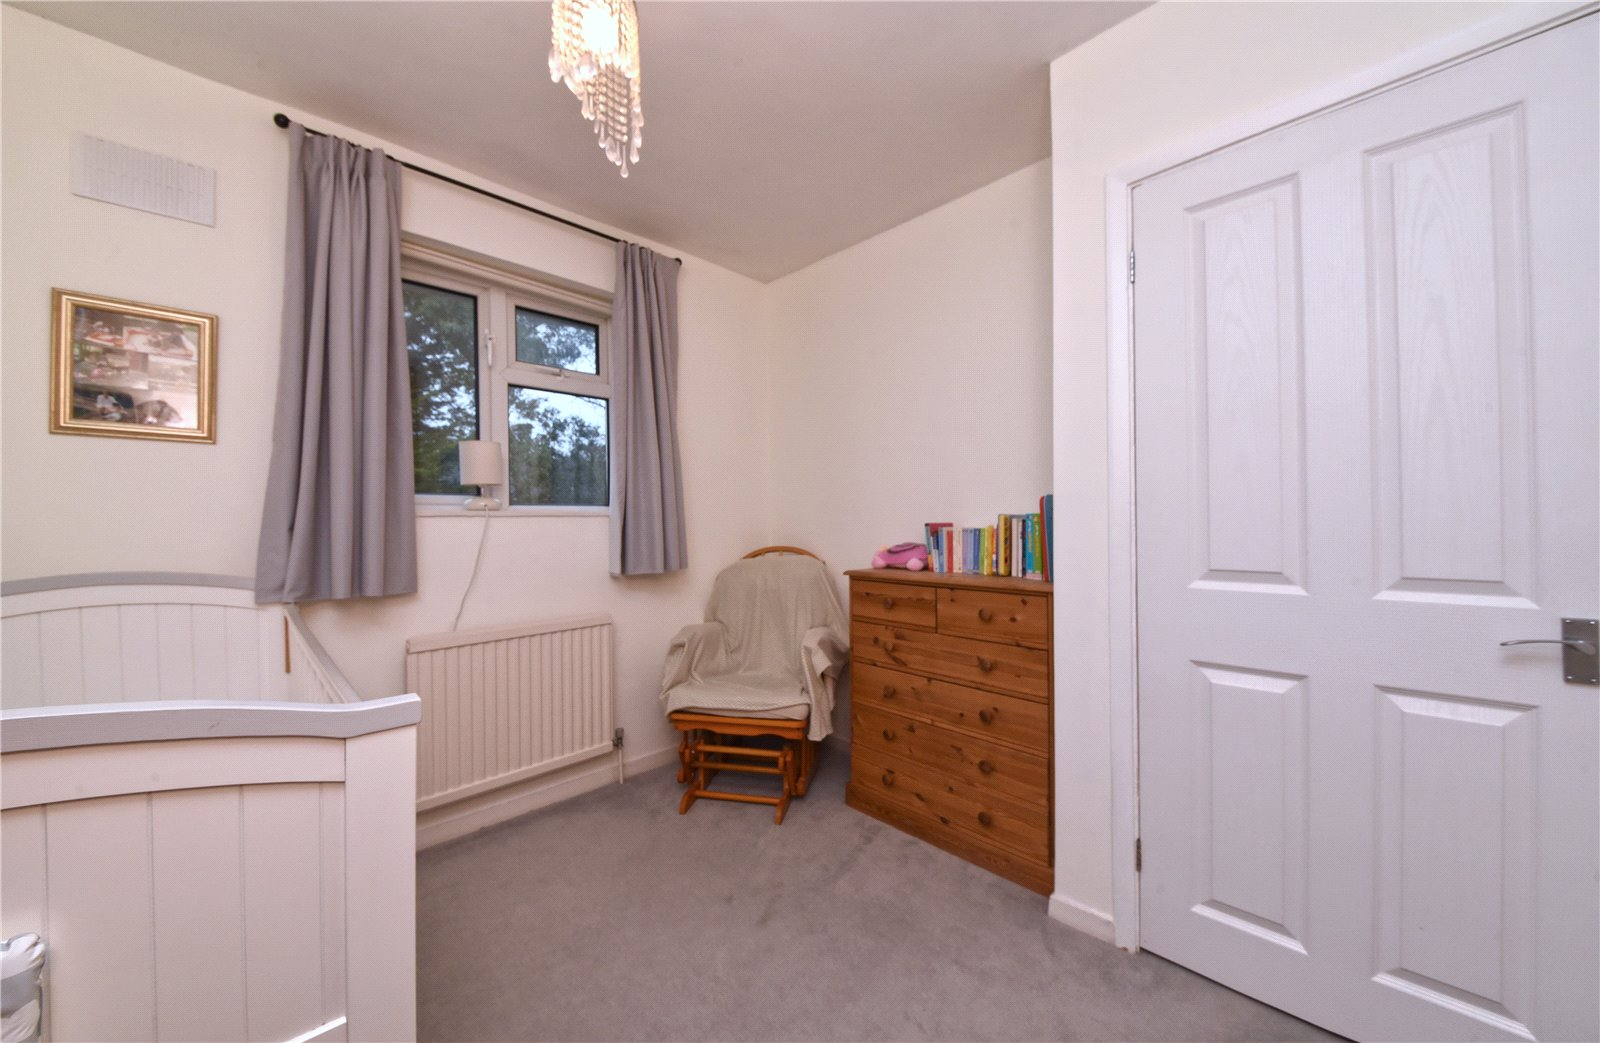 3 bed house for sale in Edgware, HA8 8XT 5